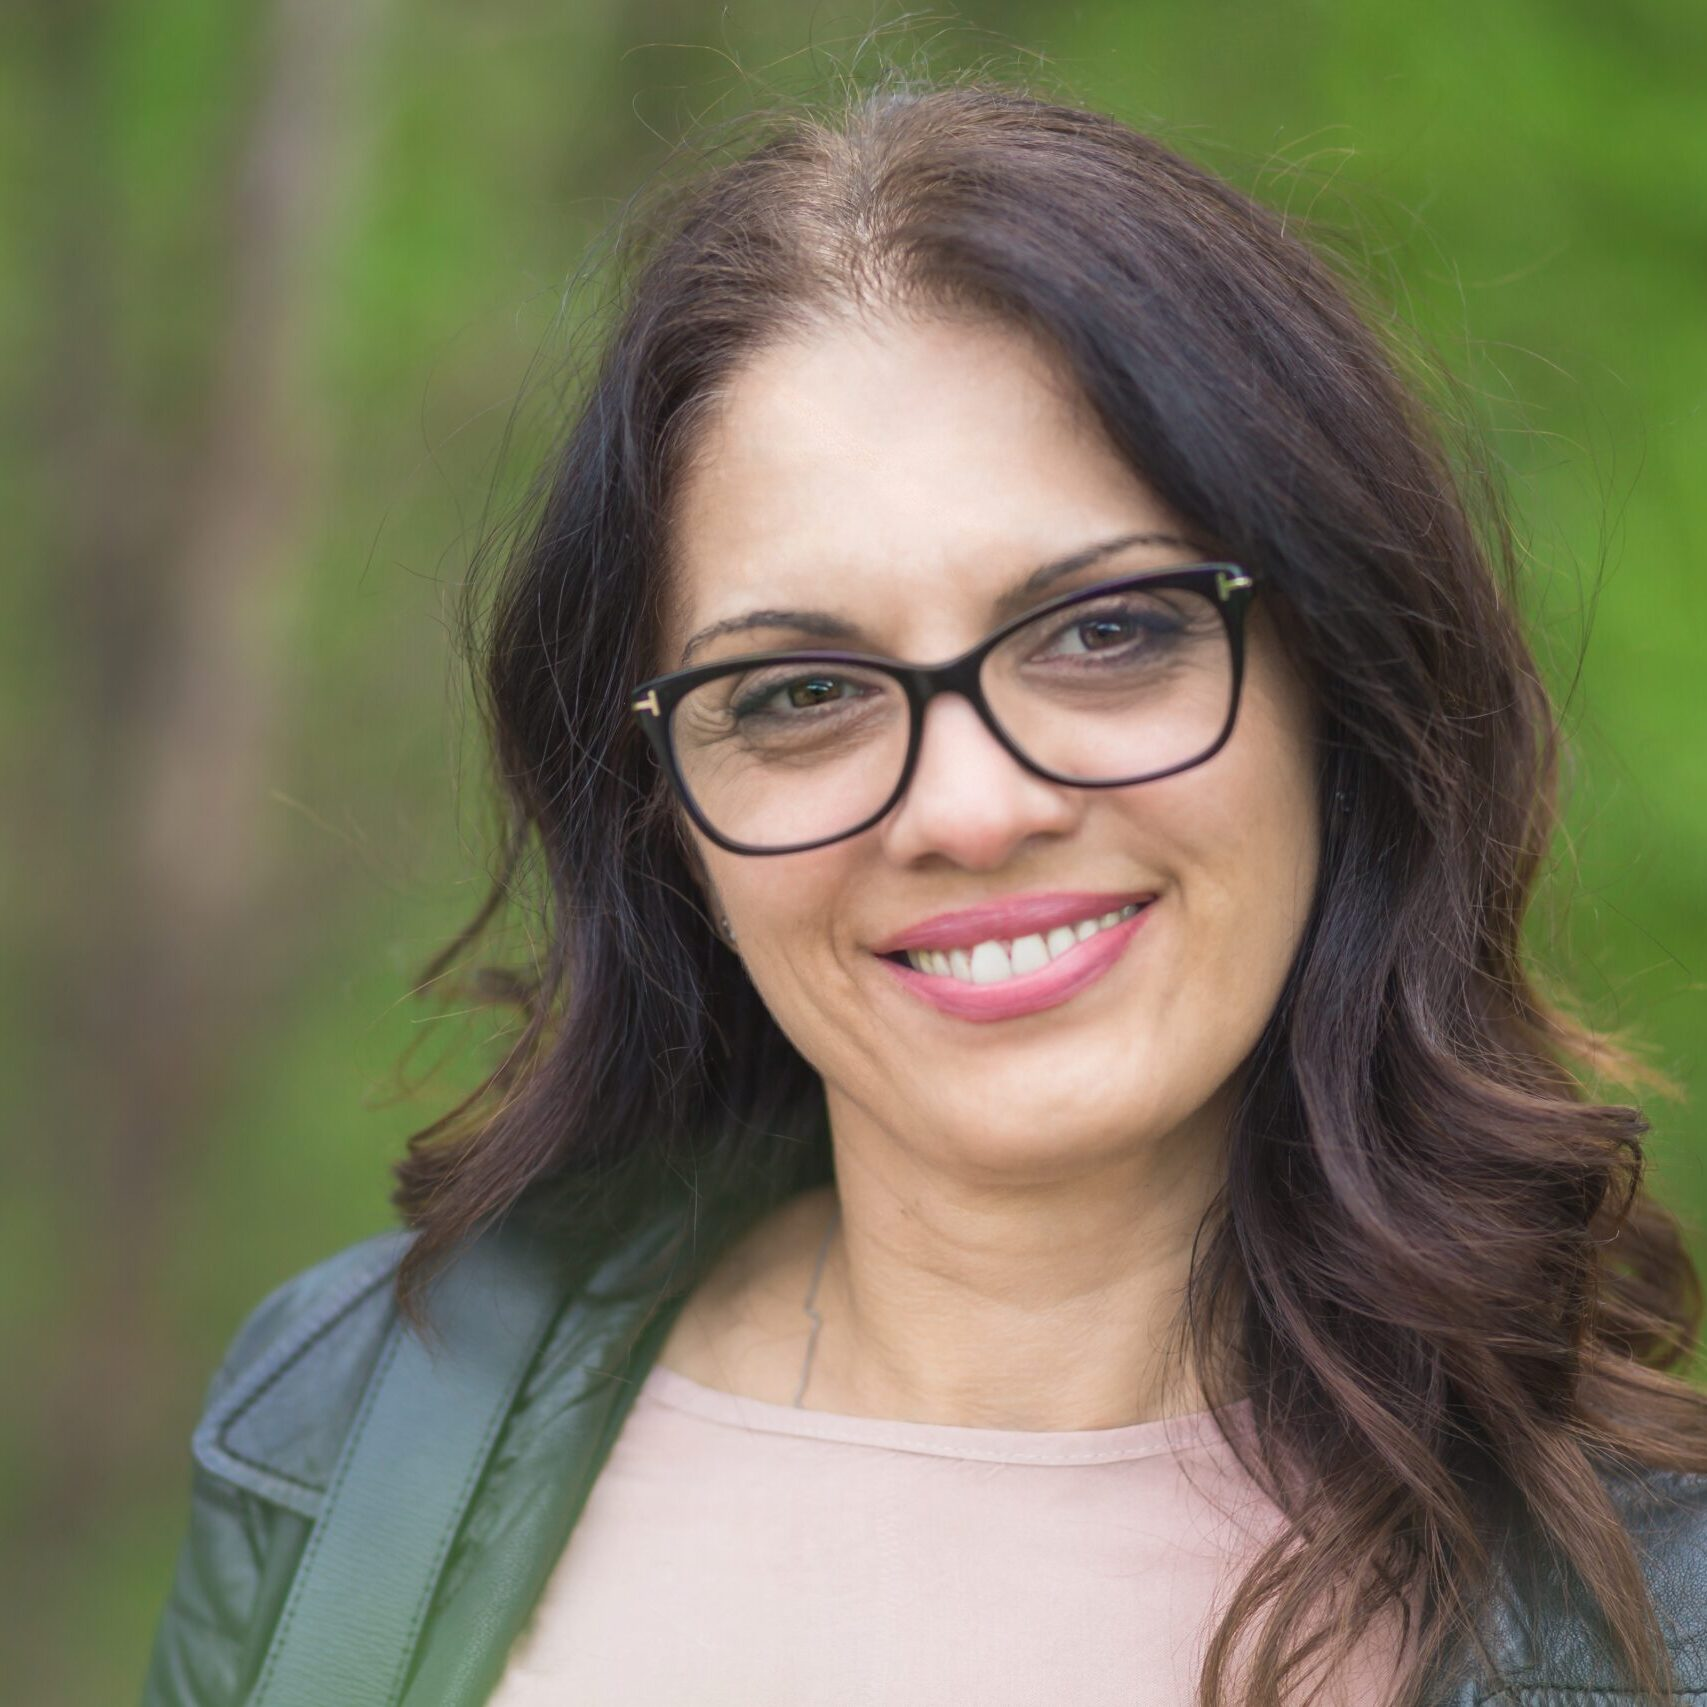 Beautiful, powerful middle-age brunette woman with glasses smiling. Springtime, outdoors